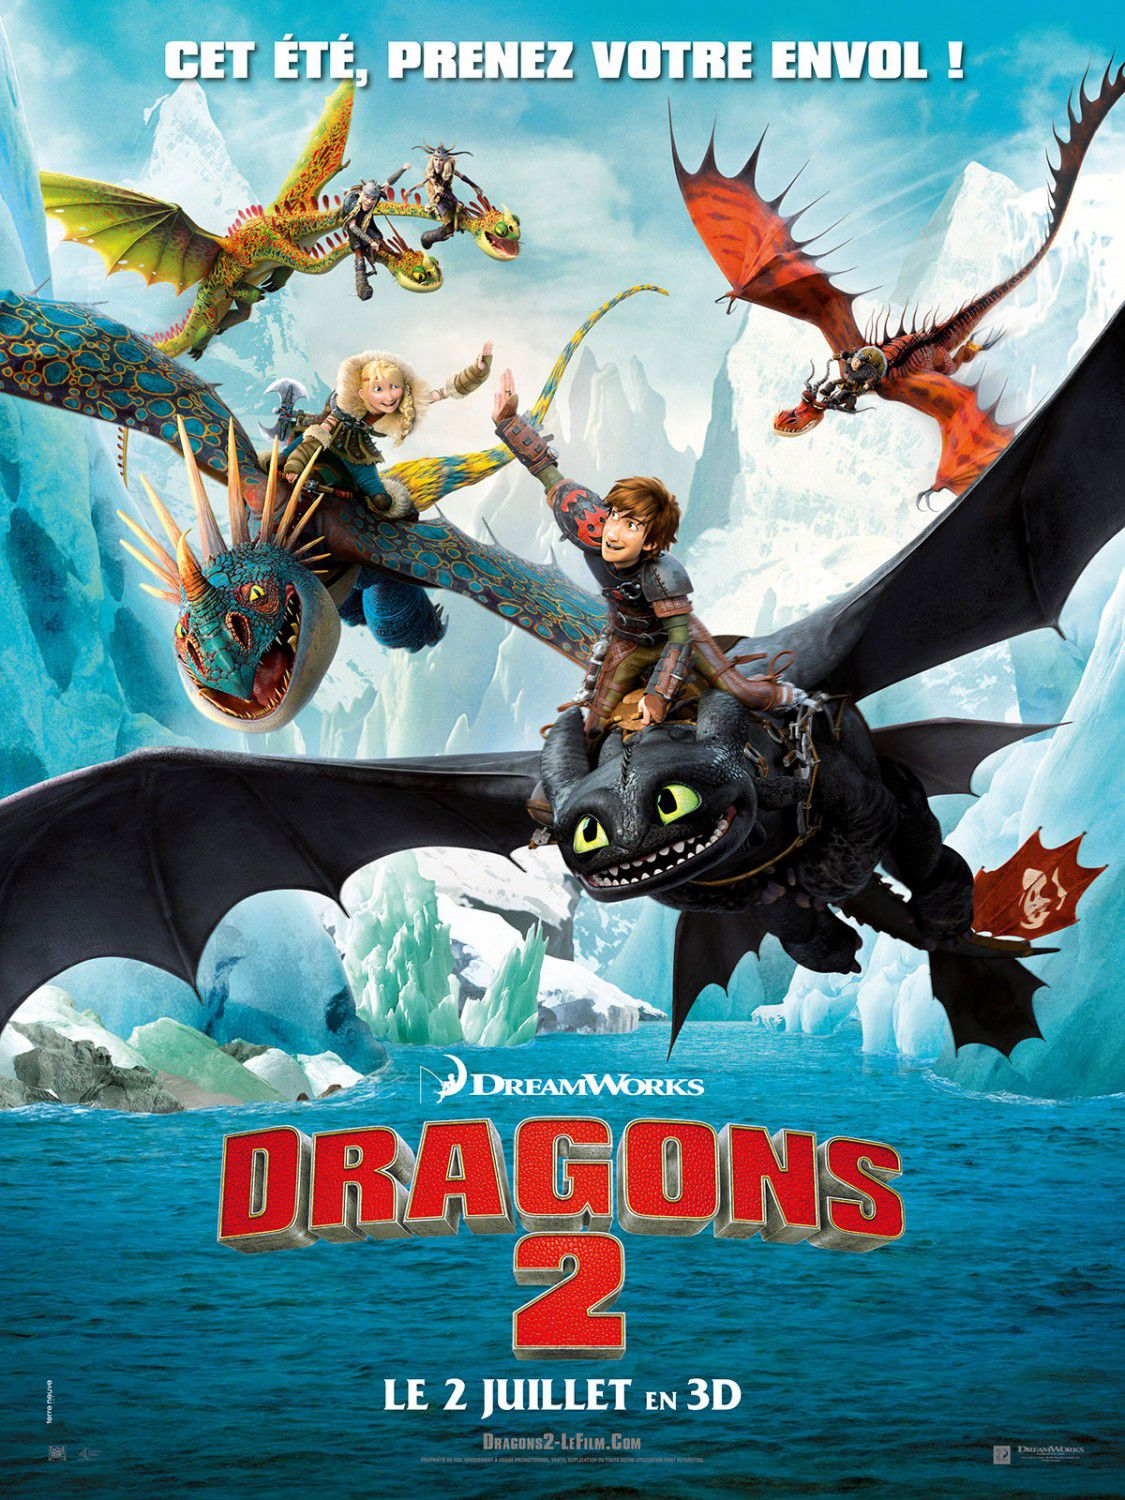 Dragon Trainer 2 - How to train your Dragon continue adventure - film poster